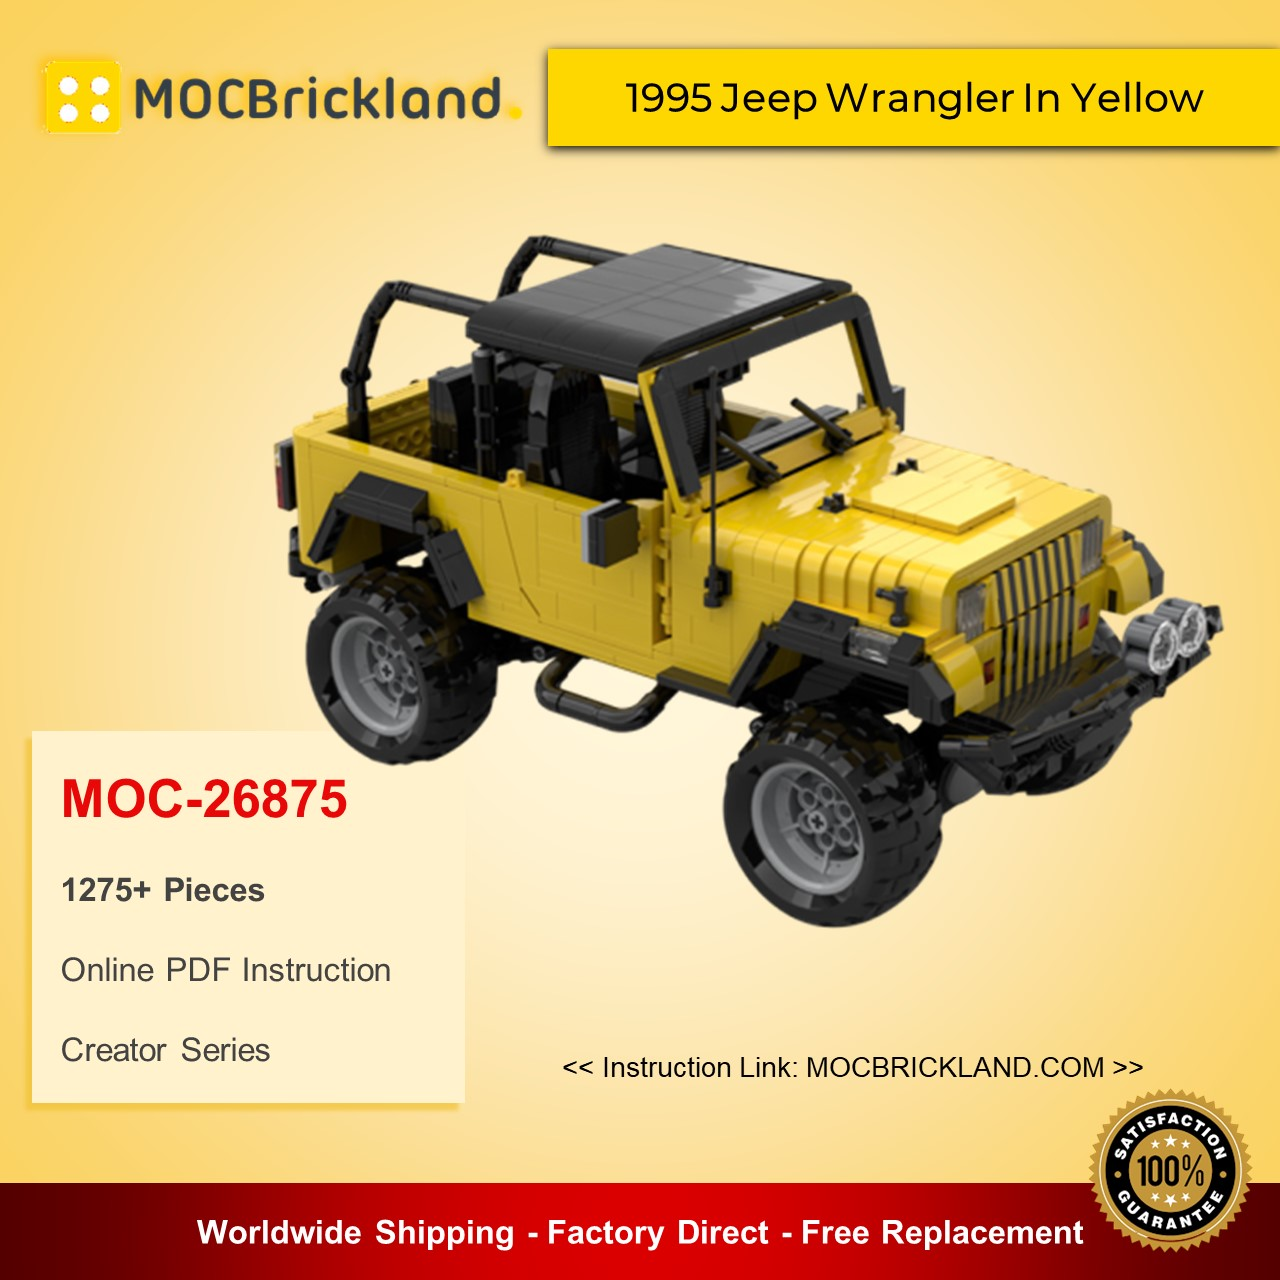 Creator MOC-26875 1995 Jeep Wrangler In Yellow MOCBRICKLAND